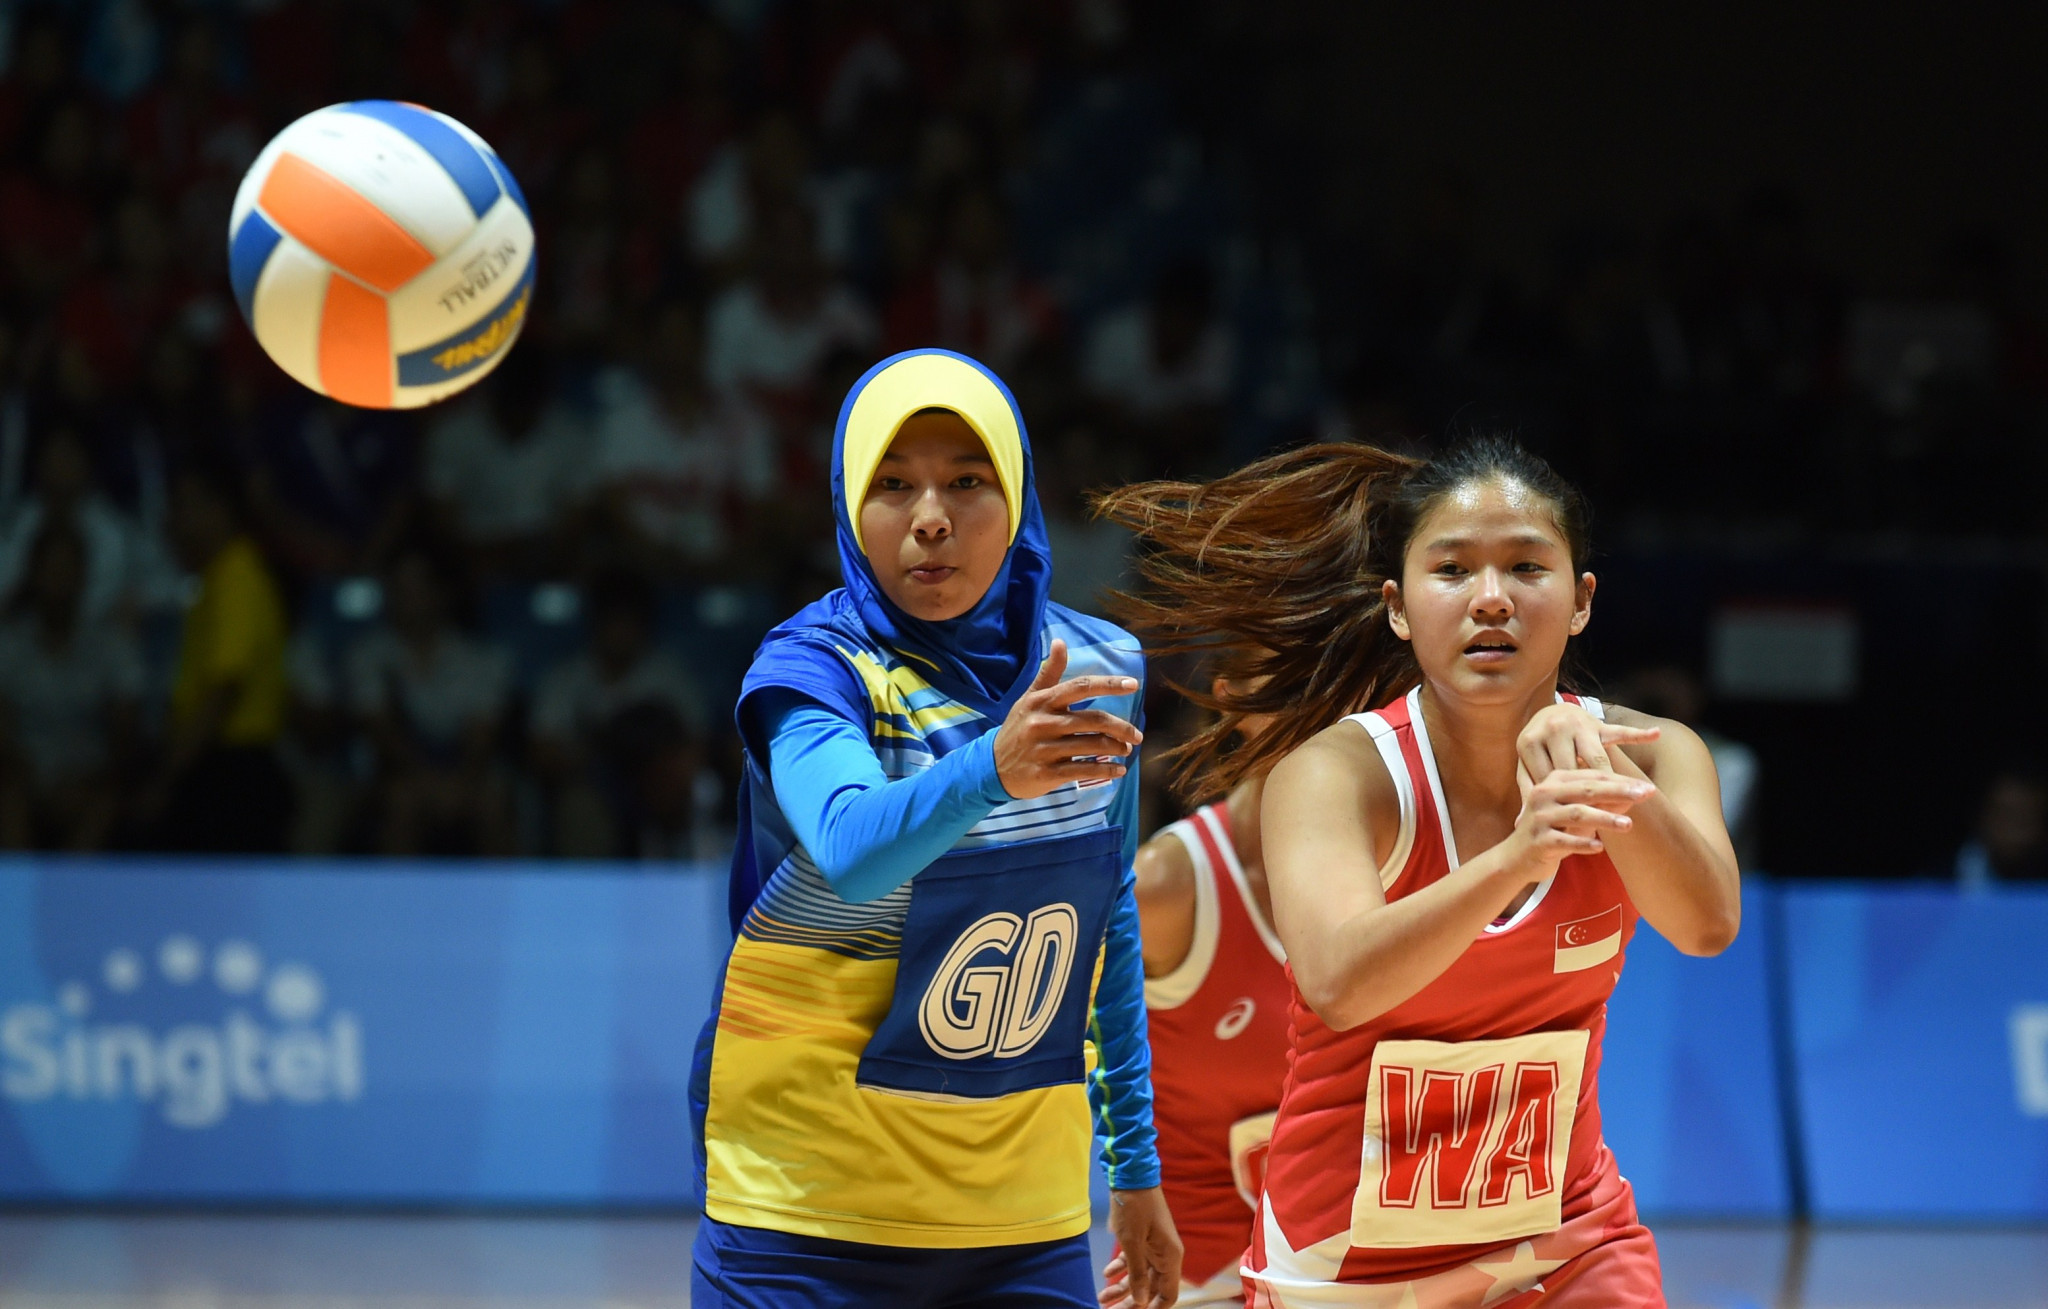 Malaysia's netball team are so far unbeaten in the tournament ©Getty Images